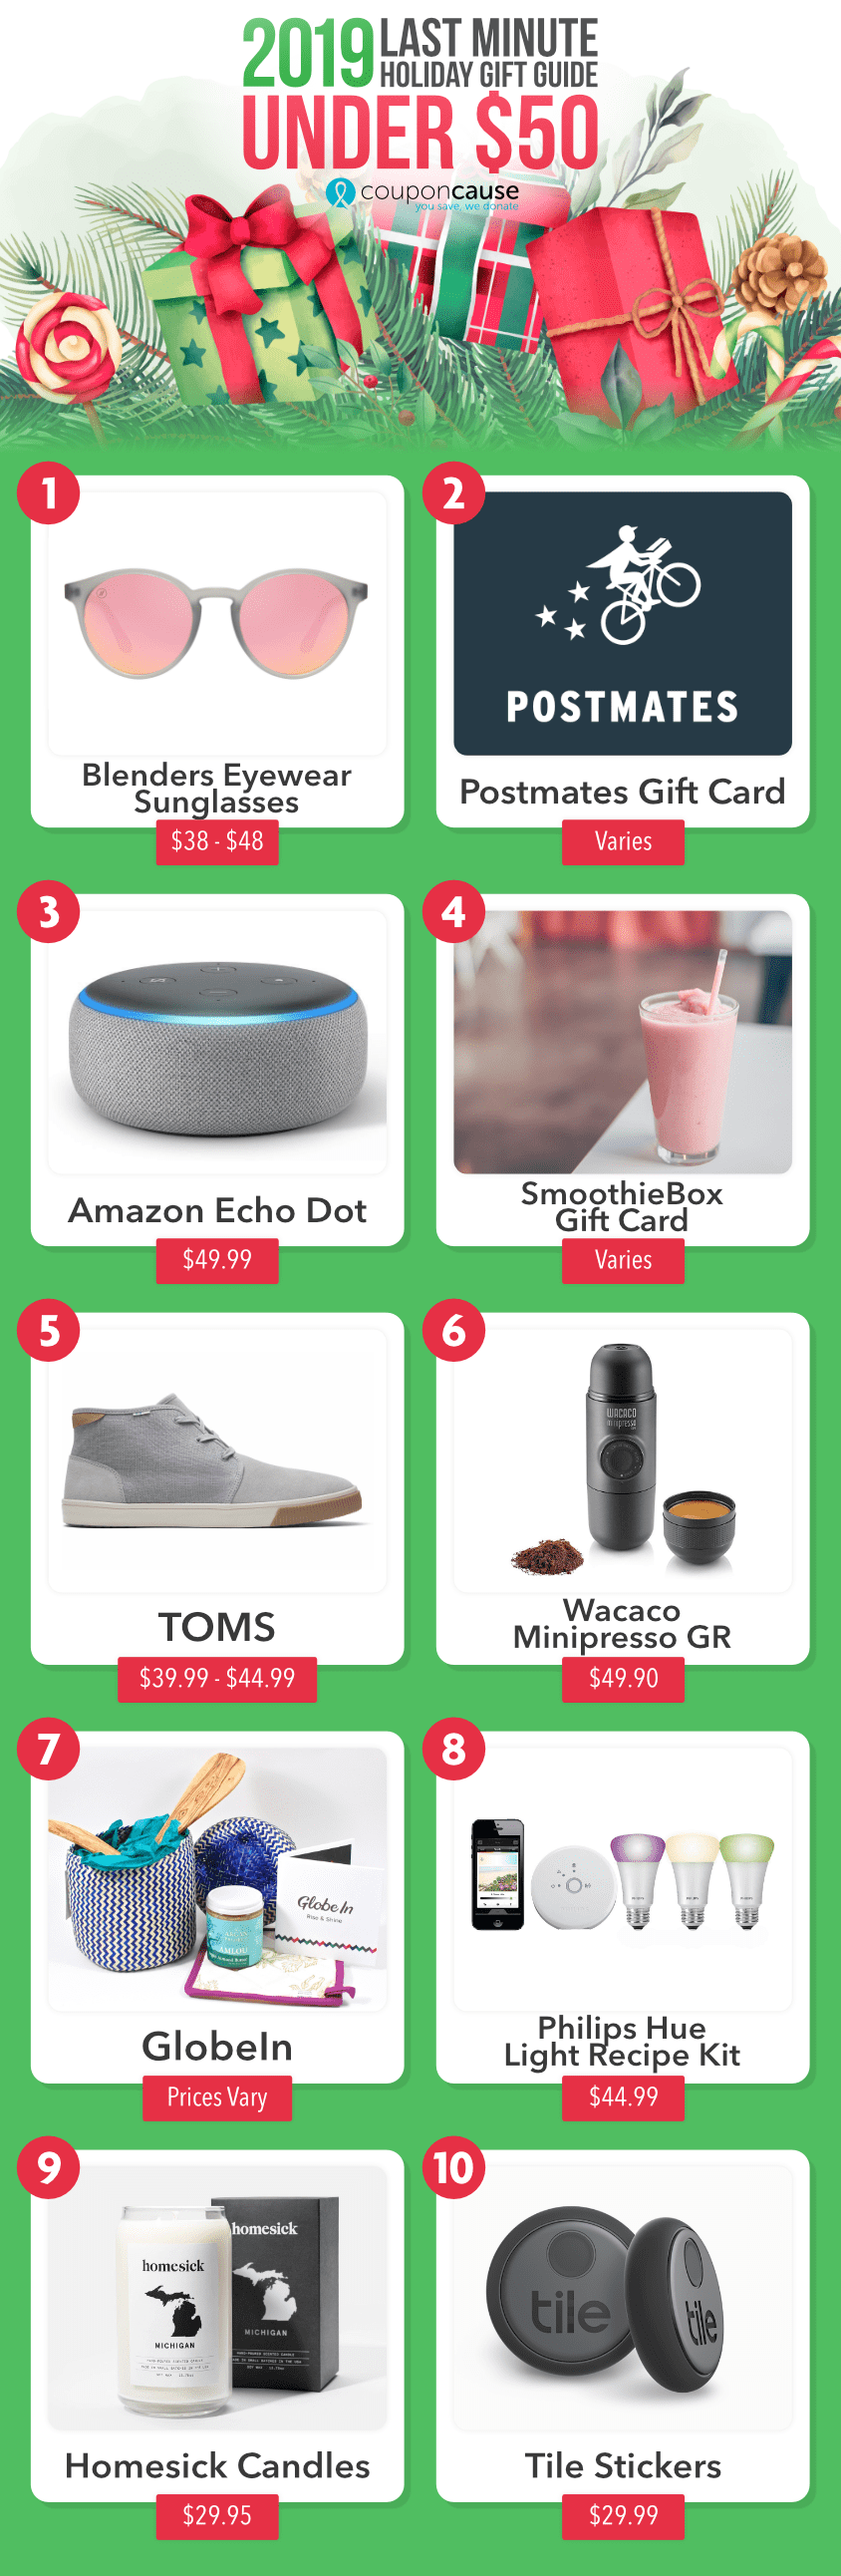 CouponCause 2019 Last-Minute Holiday Gift Guide Under $50